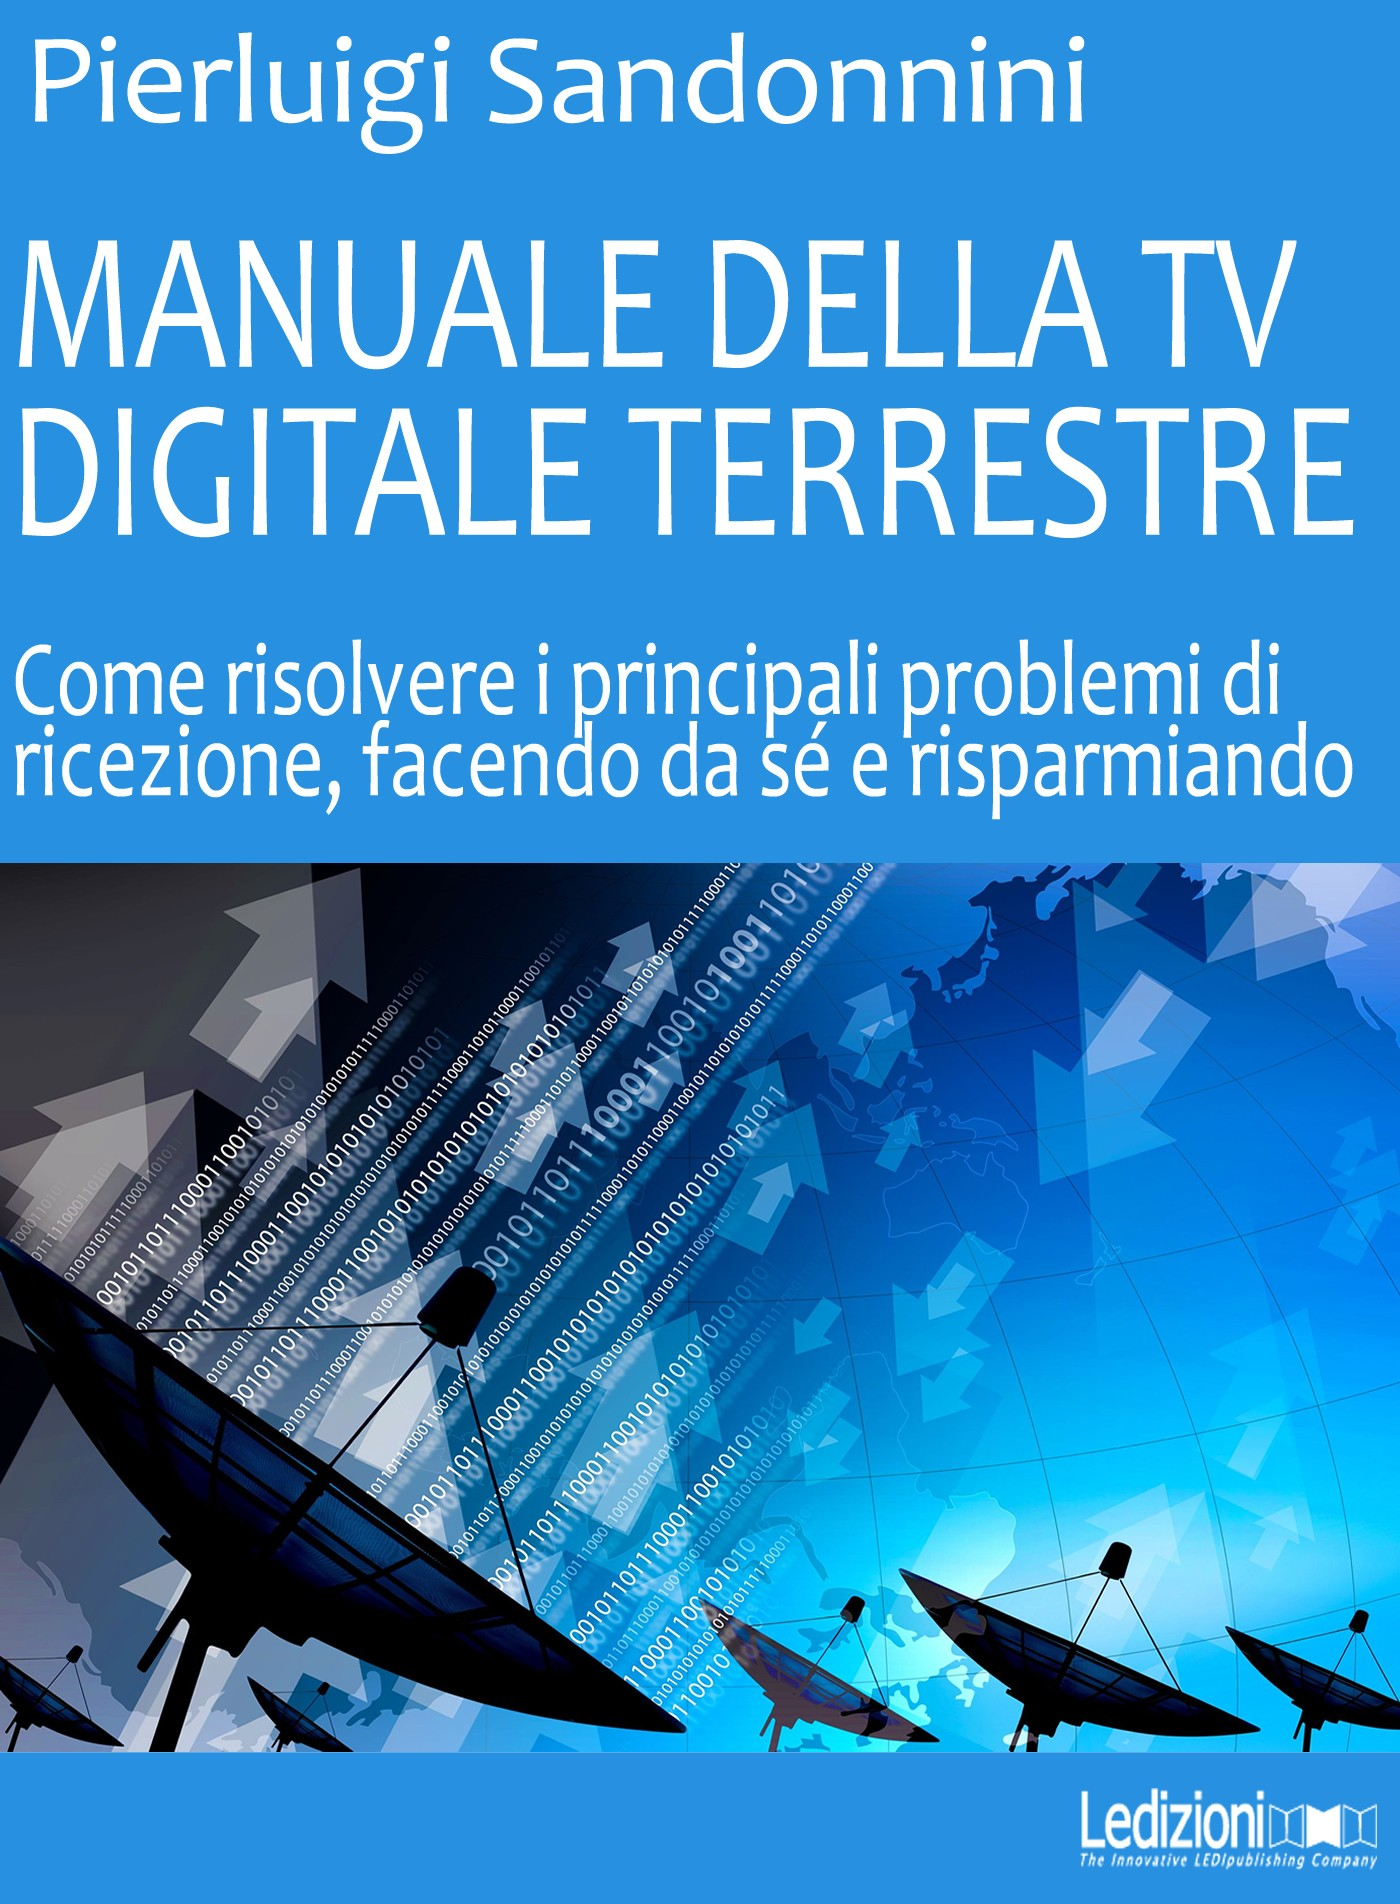 Tv Digitale Manuale Della Tv Digitale Terrestre Pierluigi Sandonnini Ebook